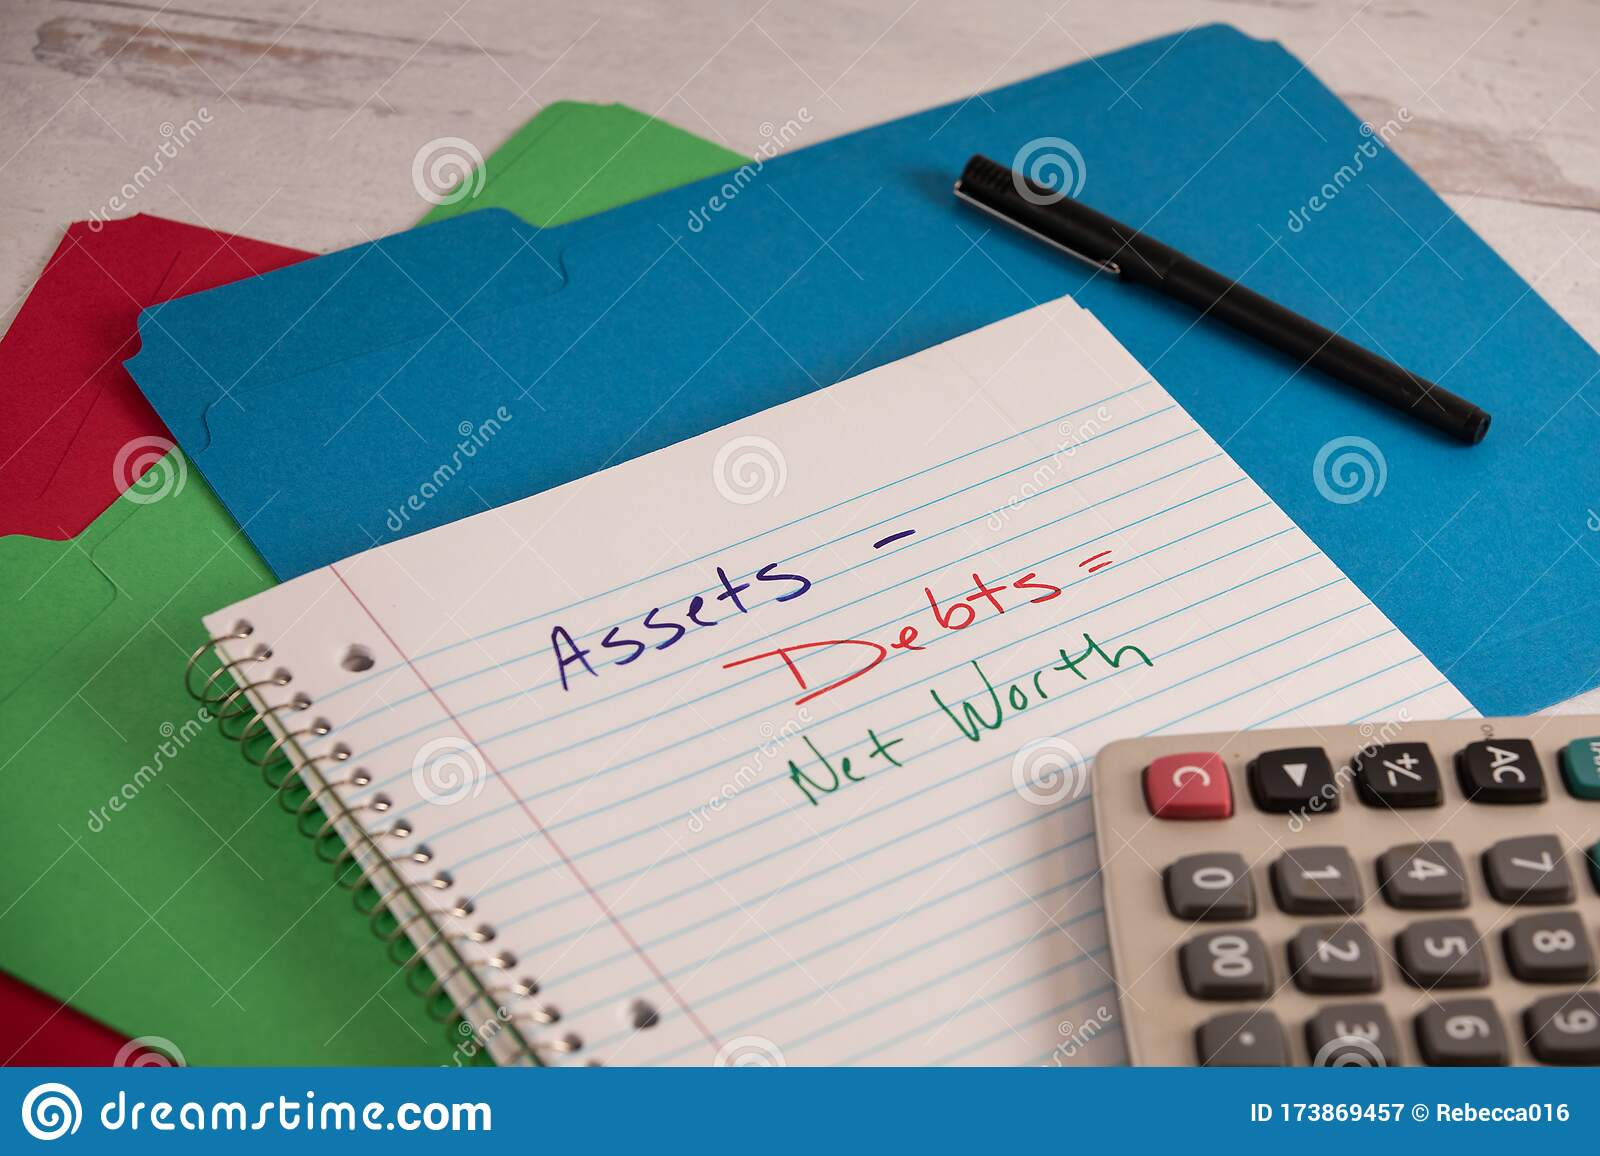 Basic Accounting Bookkeeping Equation Office Supplies On